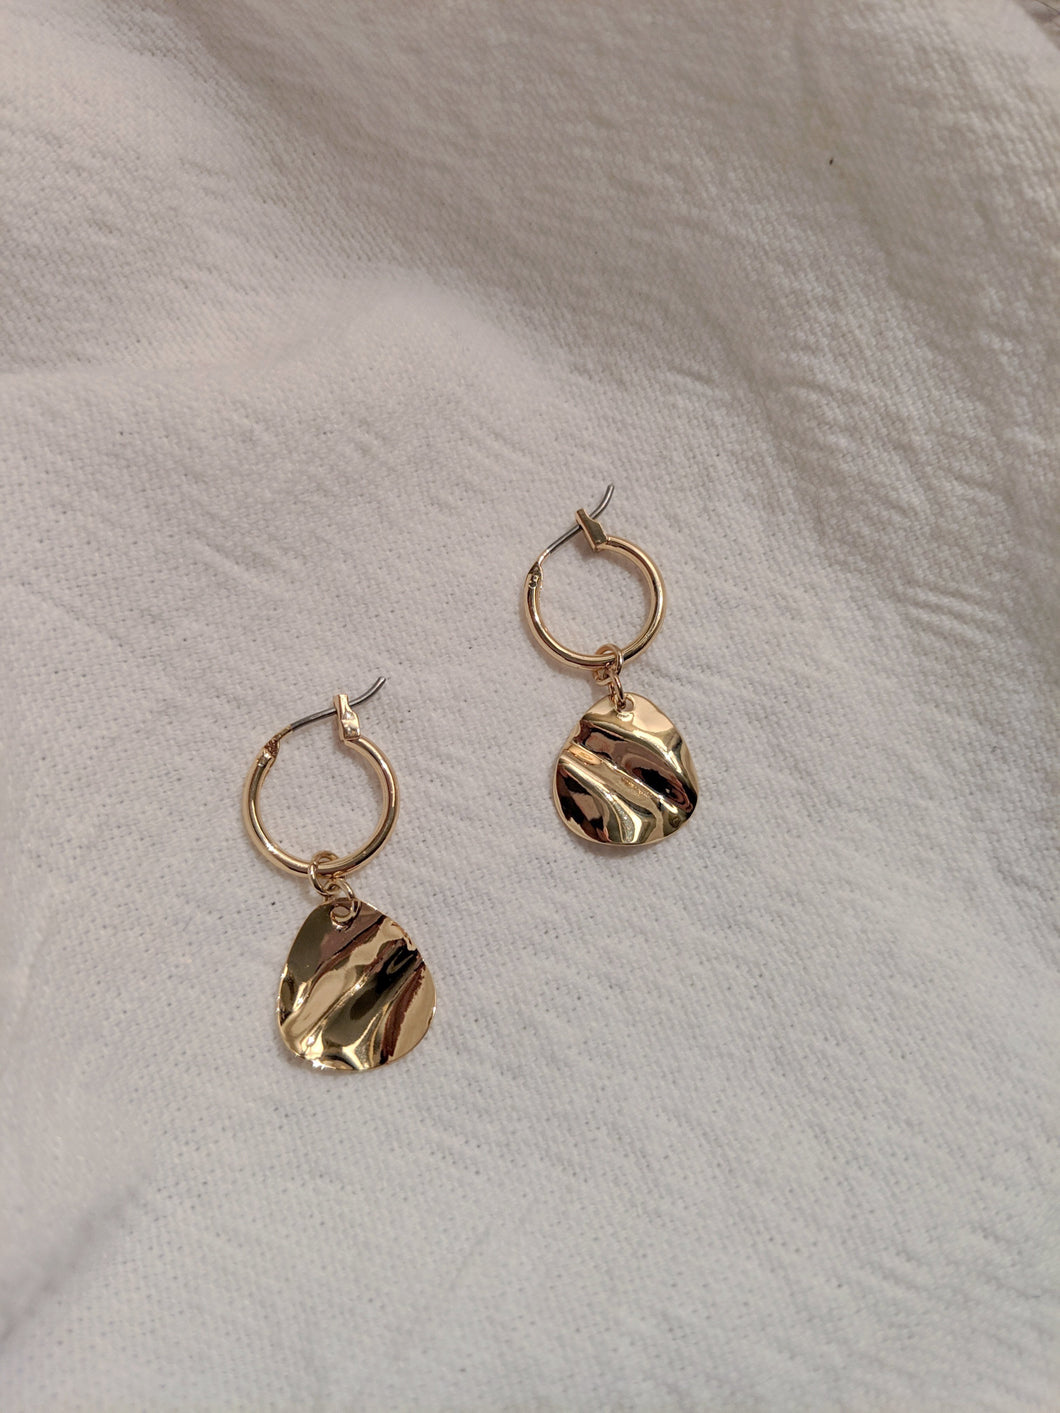 Mini Hoop Earring in Gold